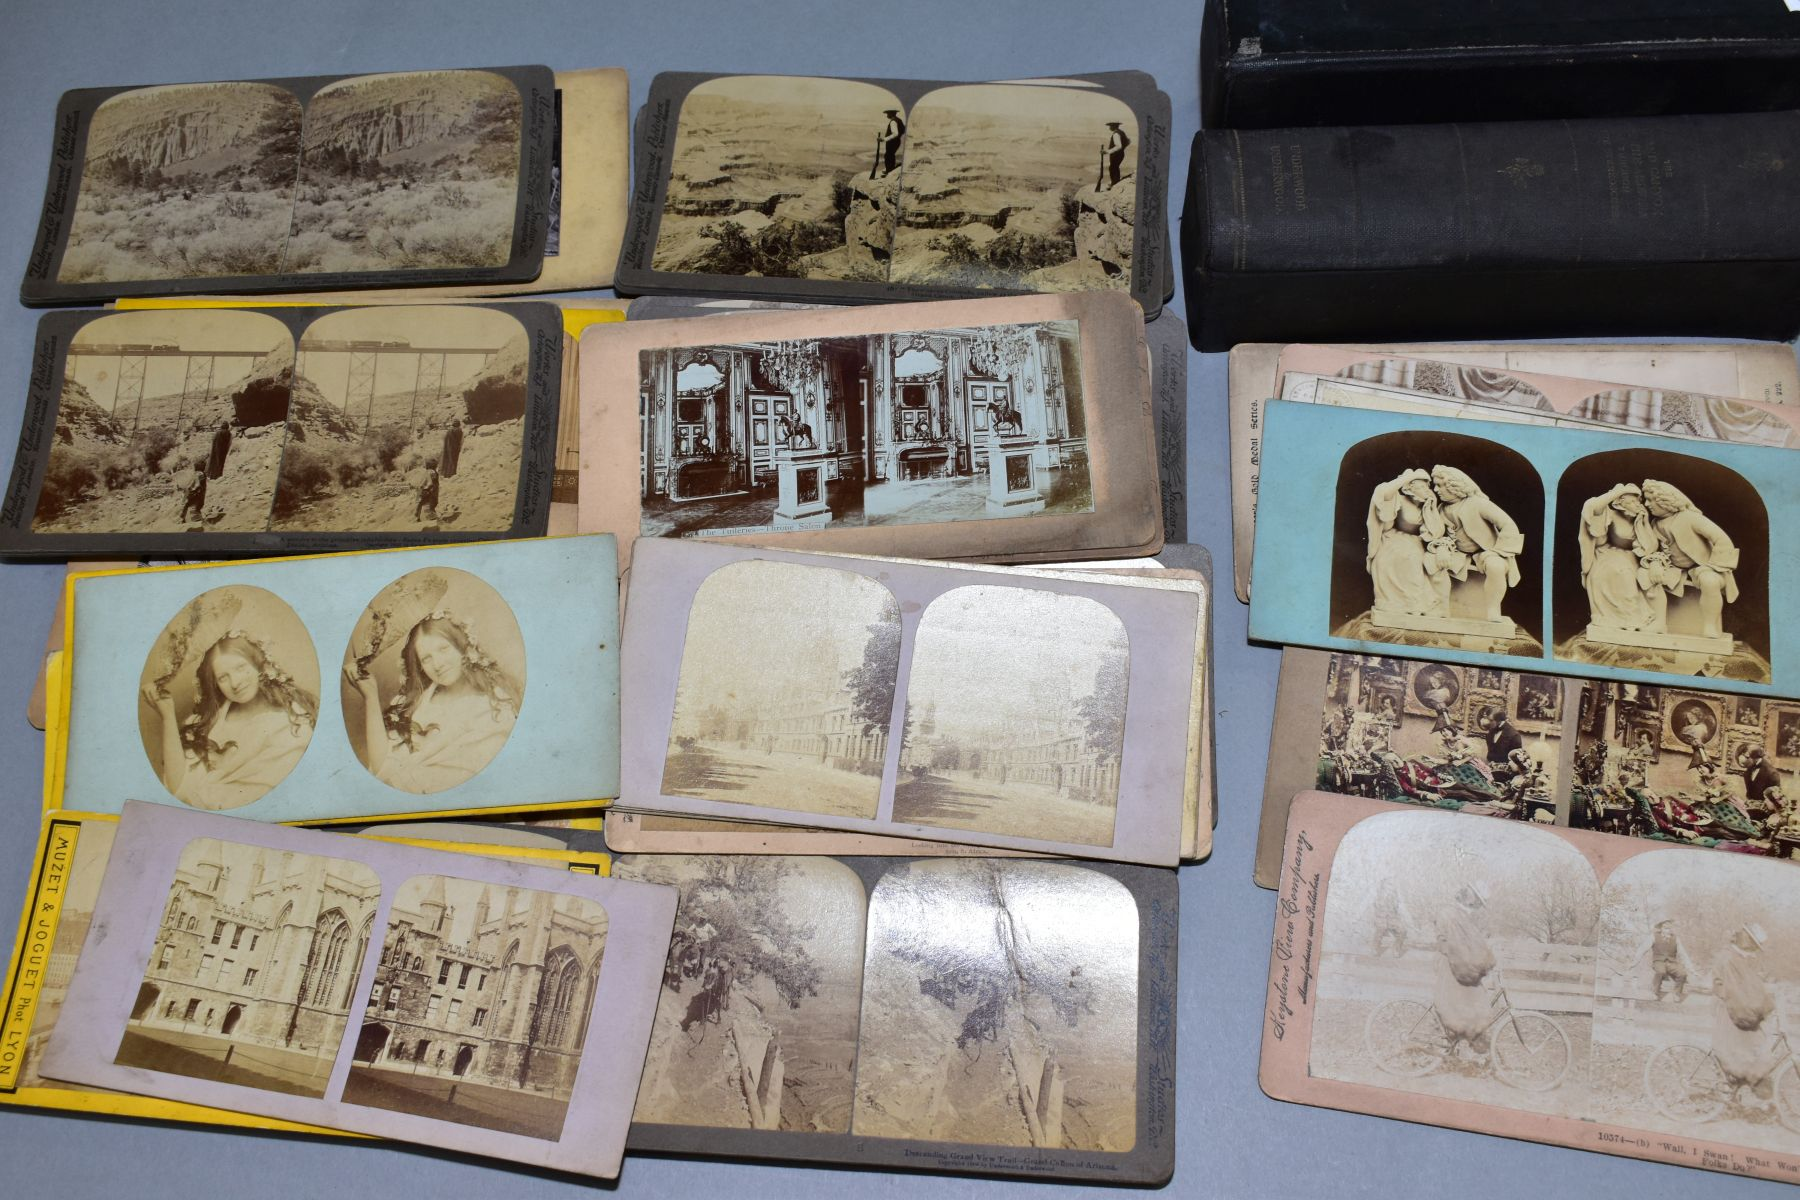 A BOXED SET OF UNDERWOOD & UNDERWOOD STEREOVIEW CARDS, 'The Grand Canyon of the Arizona through - Image 2 of 2